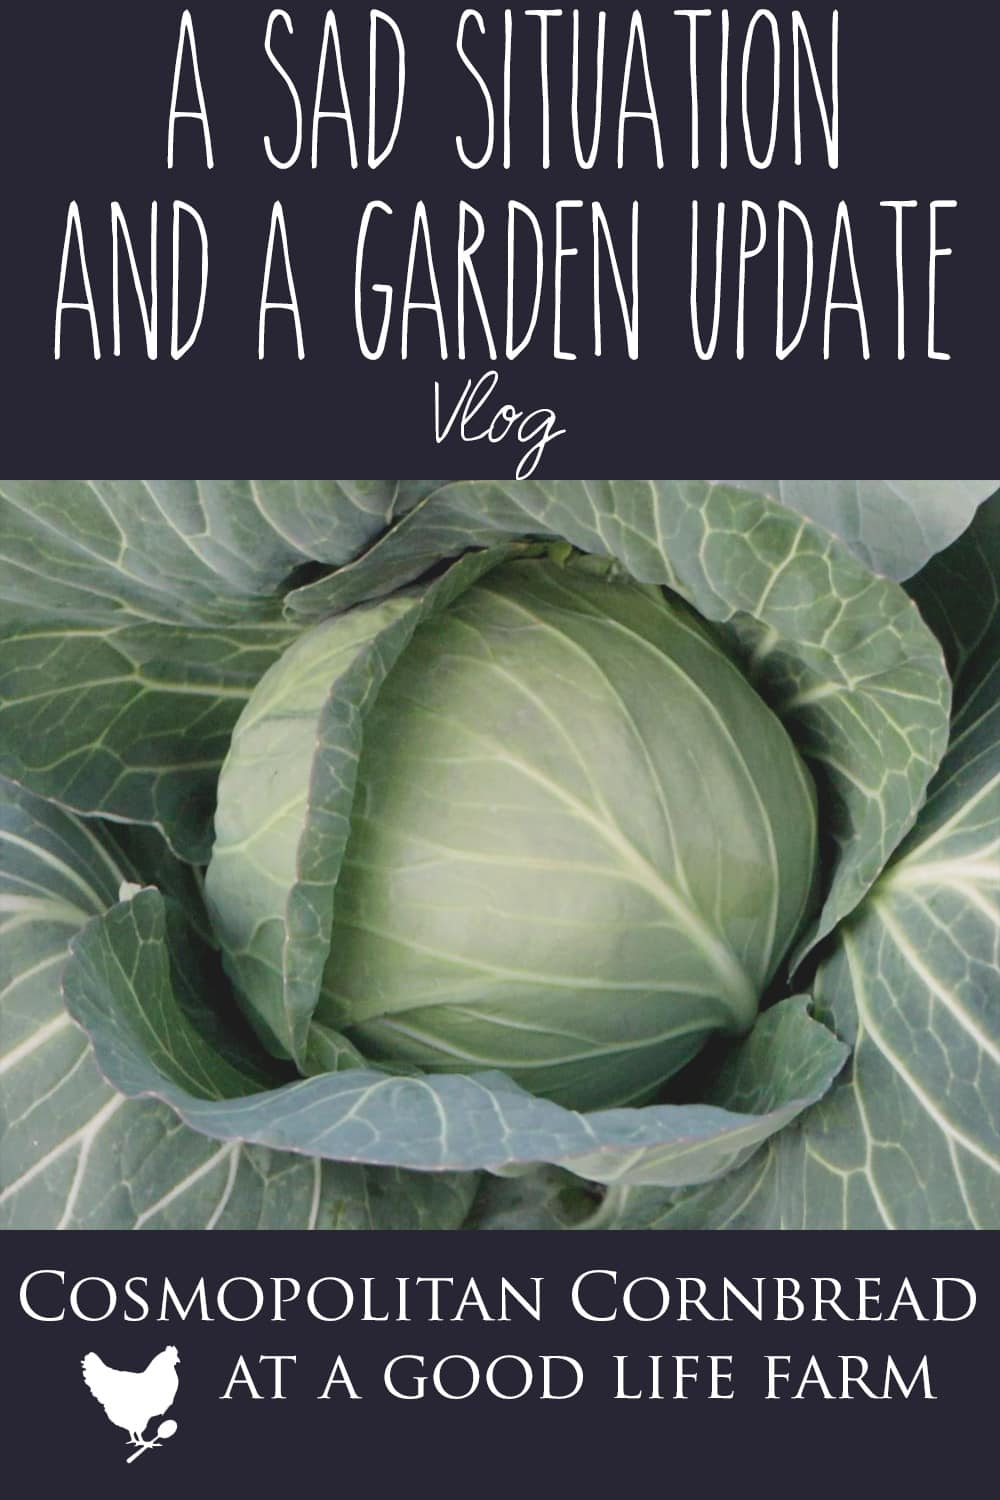 Heading out to do afternoon chores, and in the winter we have to do things a little bit differently. I also shared a some things I will be doing for the garden this coming year and how a couple things in the winter garden are doing.